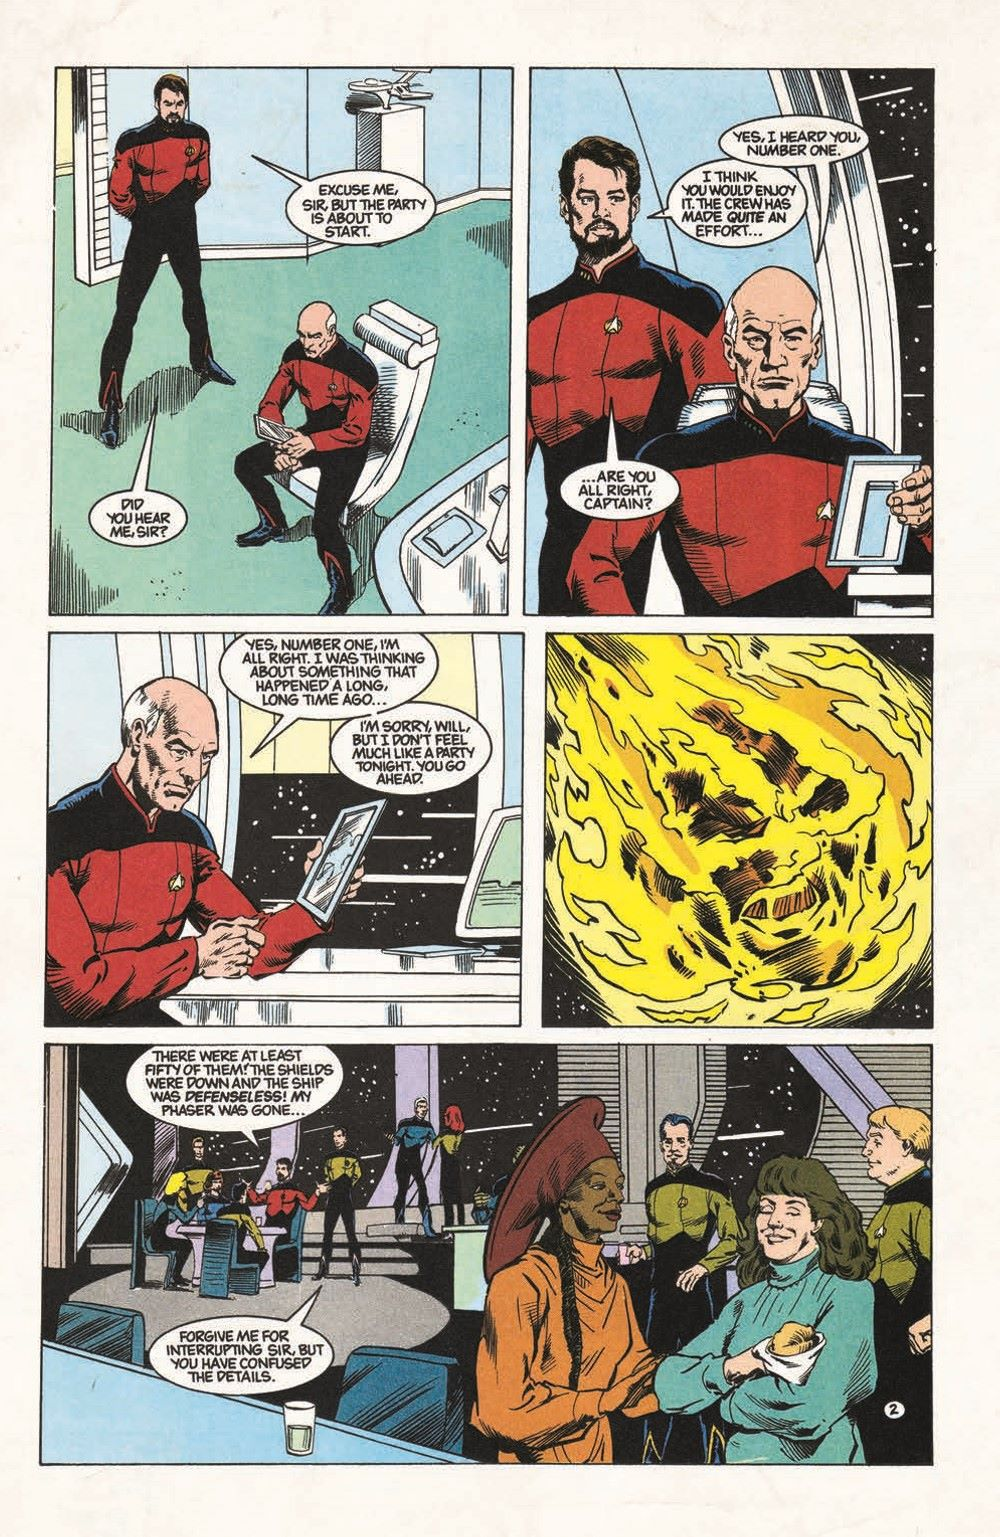 ST_TNG-TheGift-pr-4 ComicList Previews: STAR TREK THE NEXT GENERATION THE GIFT #1